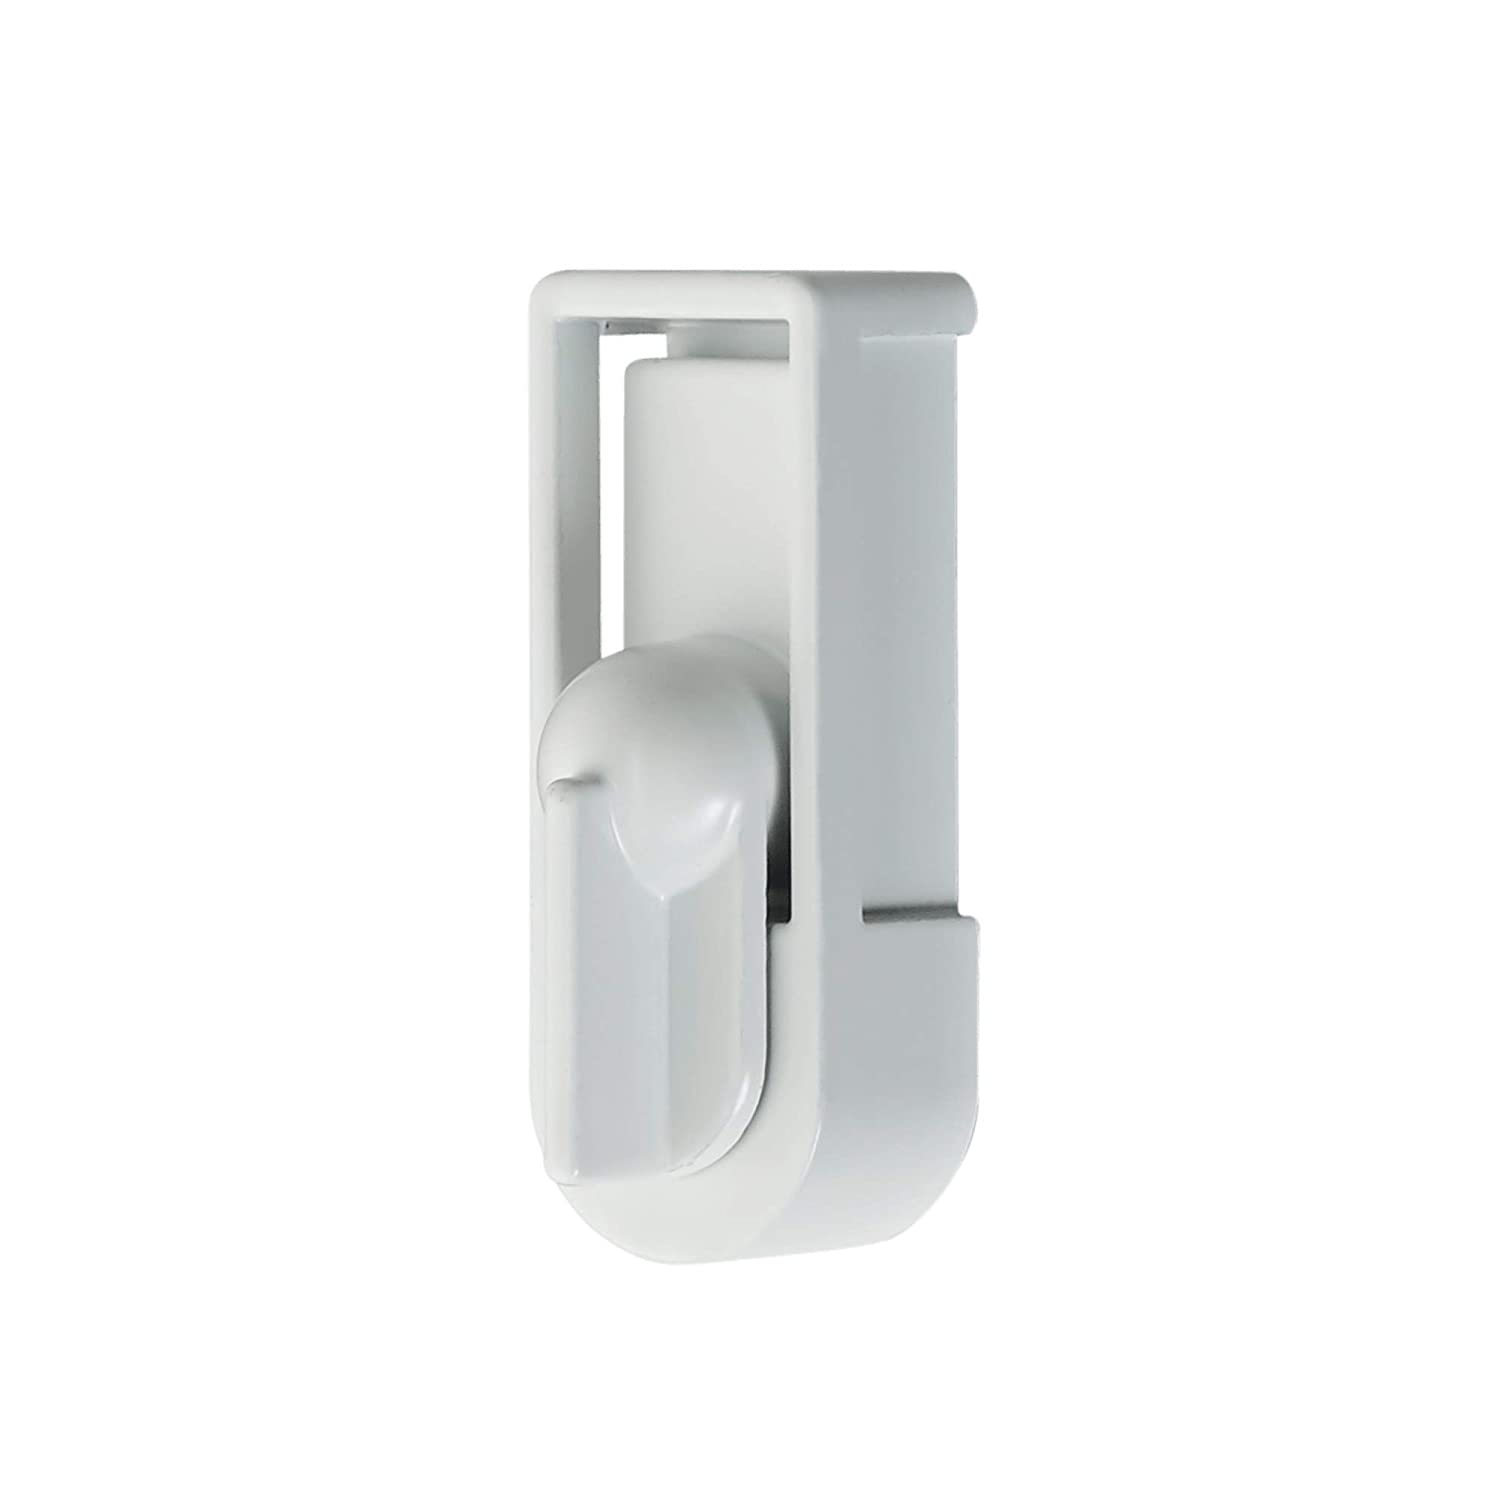 Ideal Security SK5W SK5 Storm Door Deadbolt White